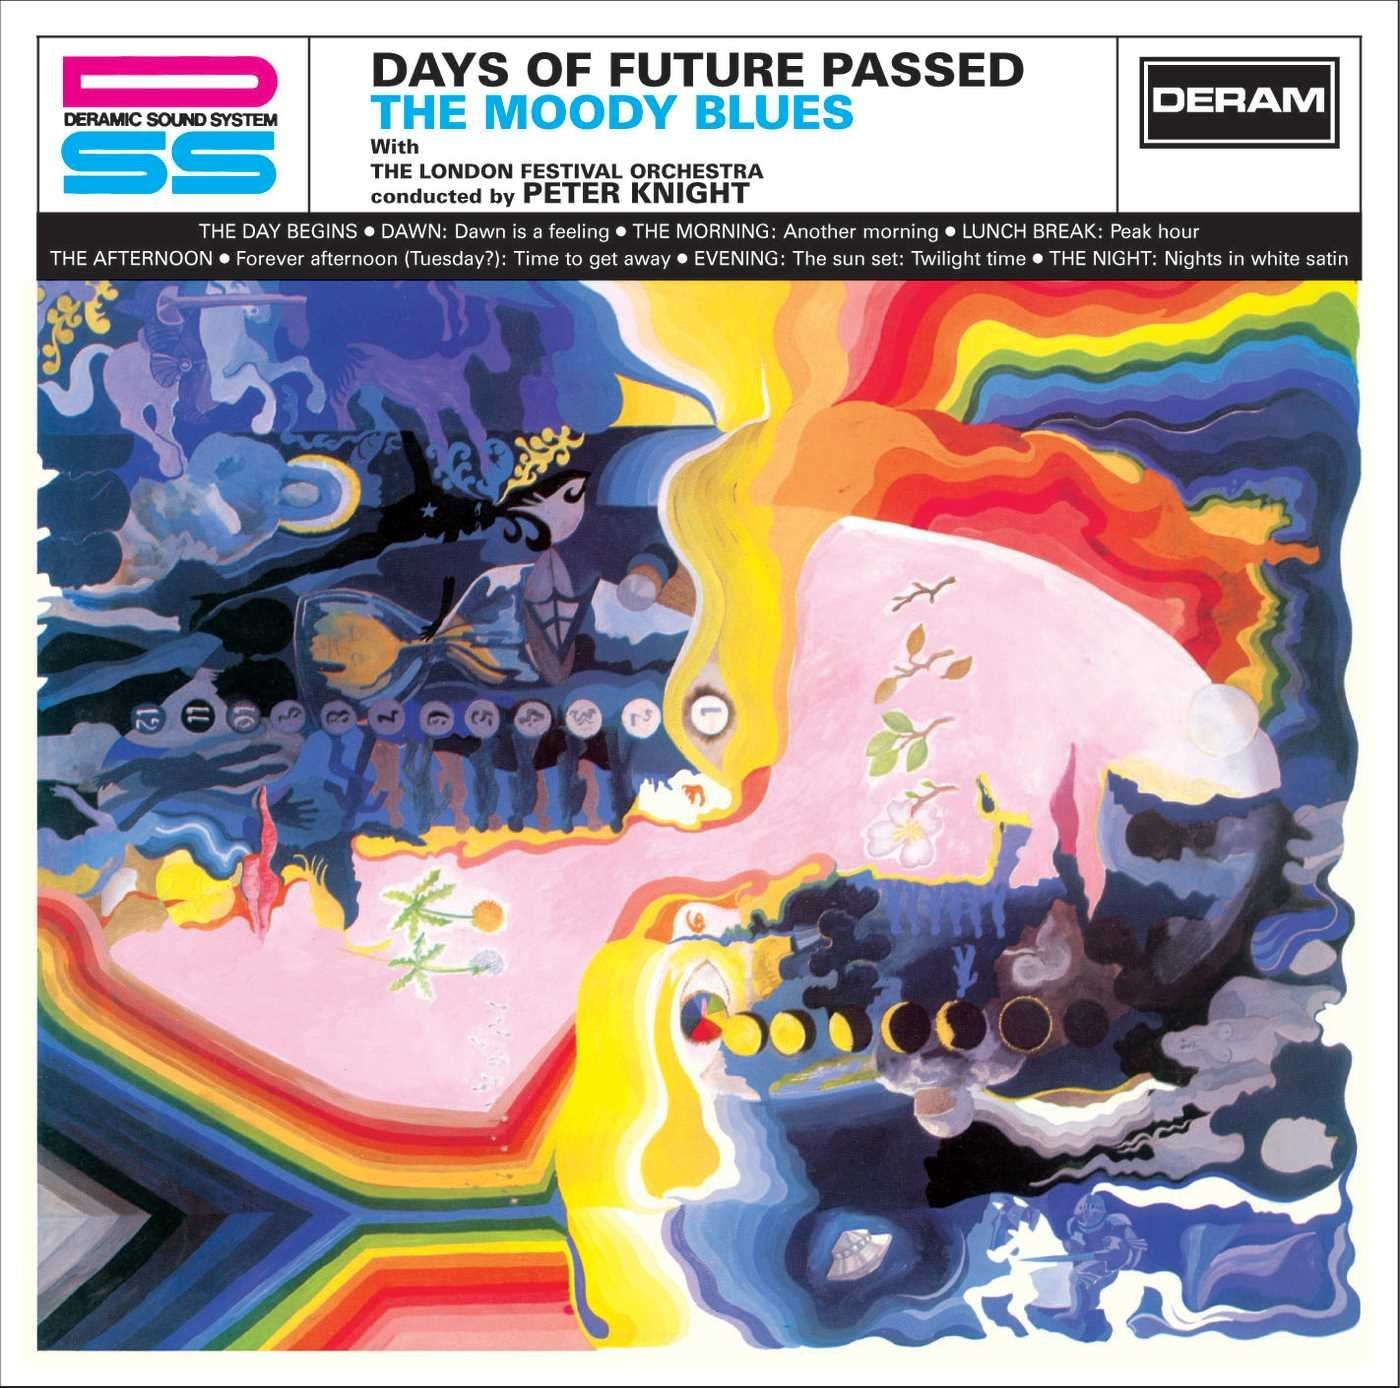 The Moody Blues - Days of Future Past